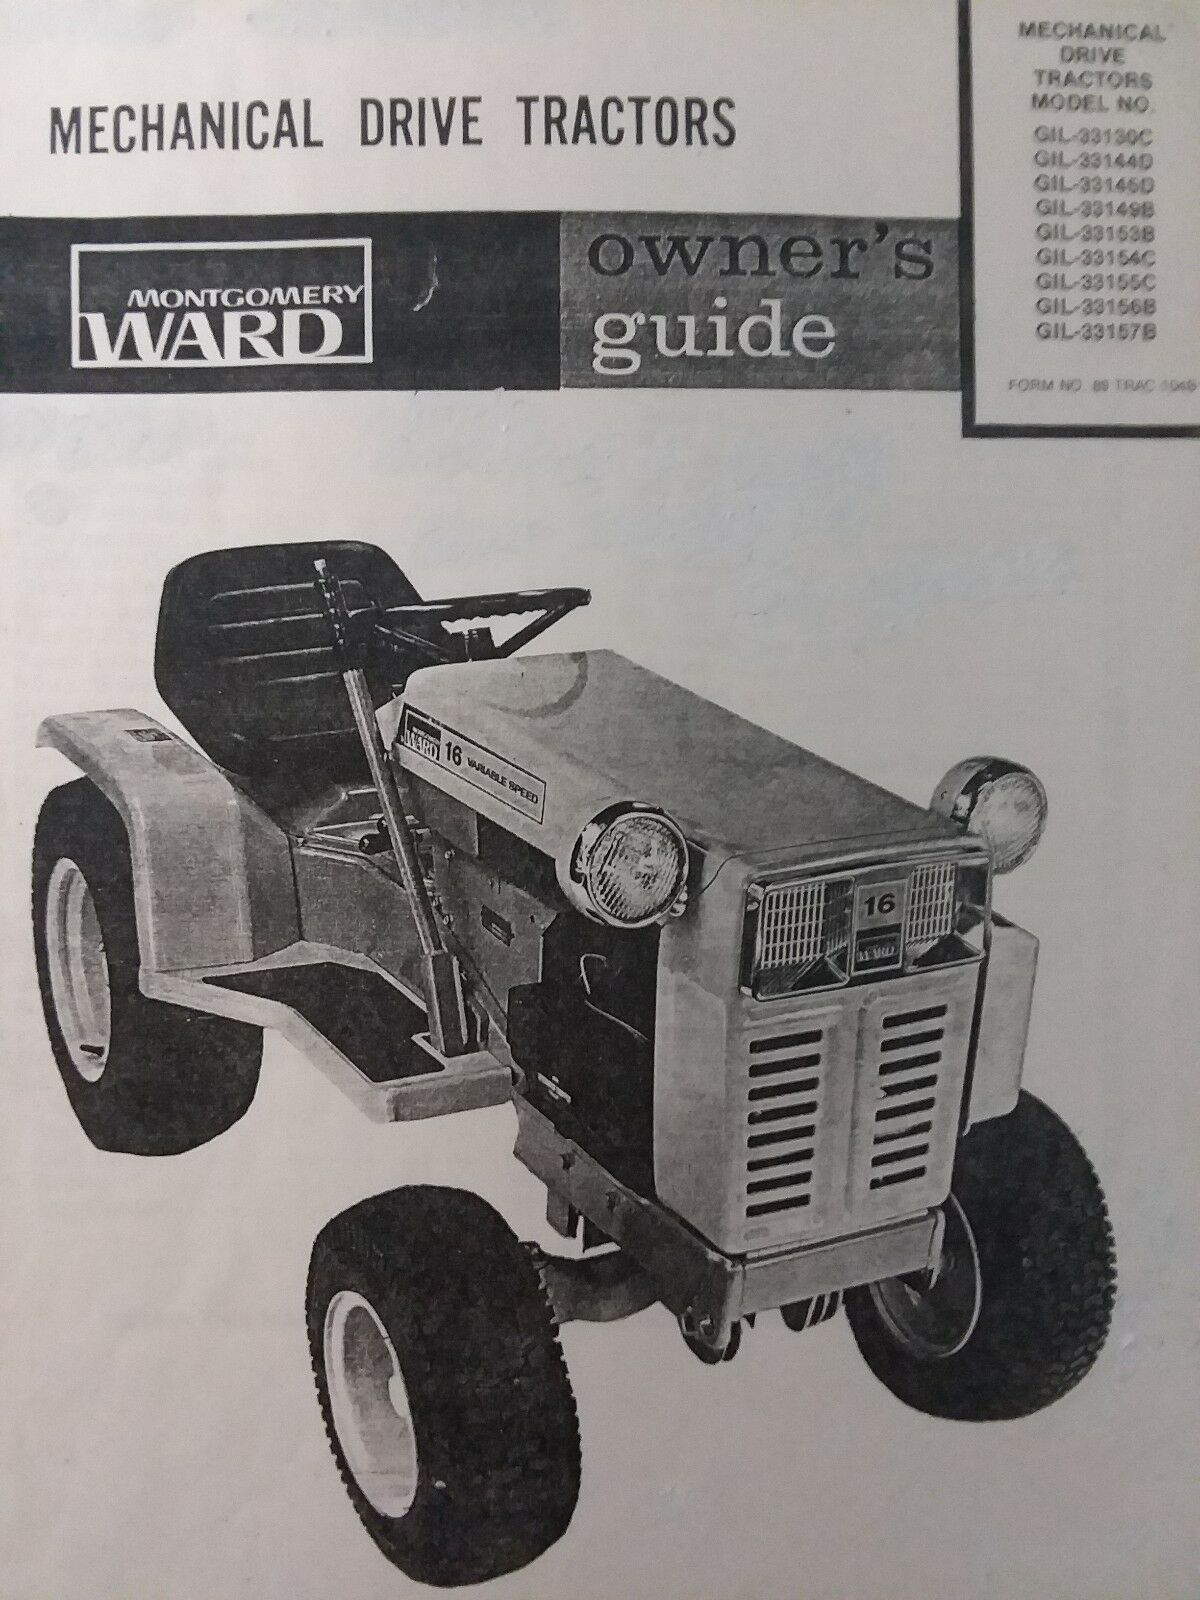 hight resolution of montgomery ward gilson gear drive 16 hp garden tractor owners manual gil 33130c for sale online ebay